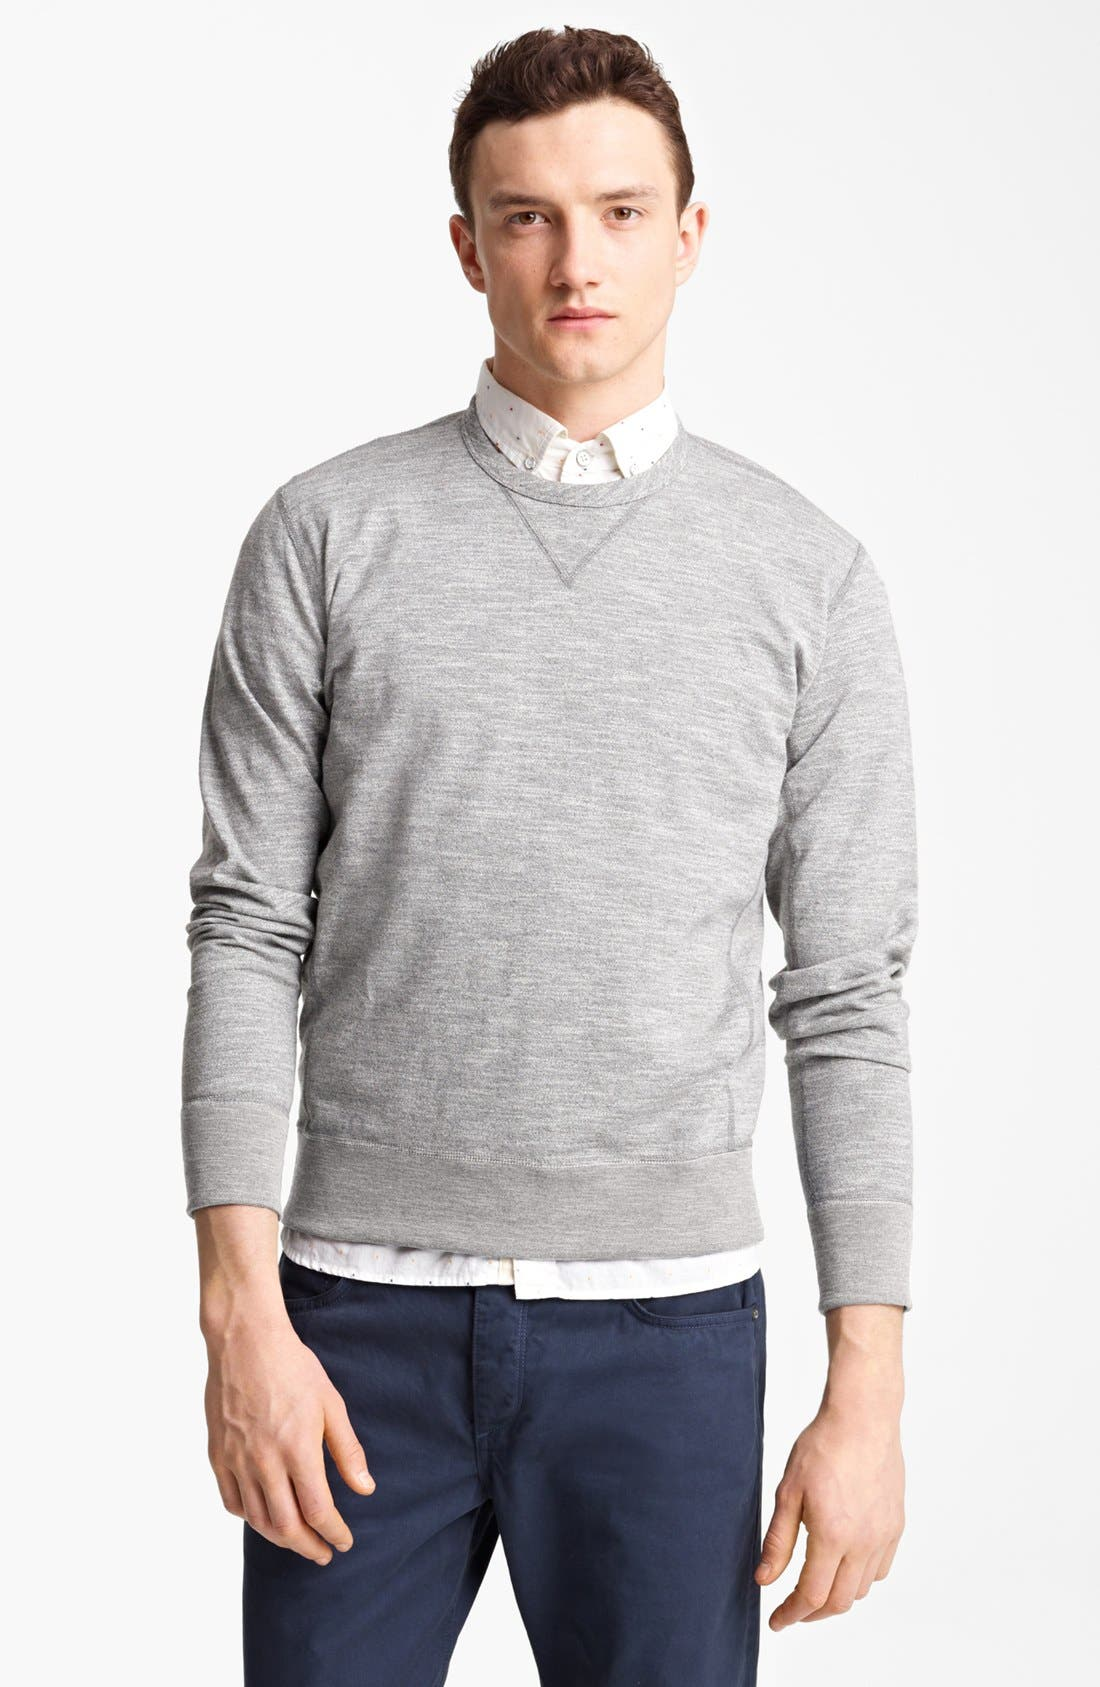 Alternate Image 1 Selected - rag & bone Crewneck Sweatshirt